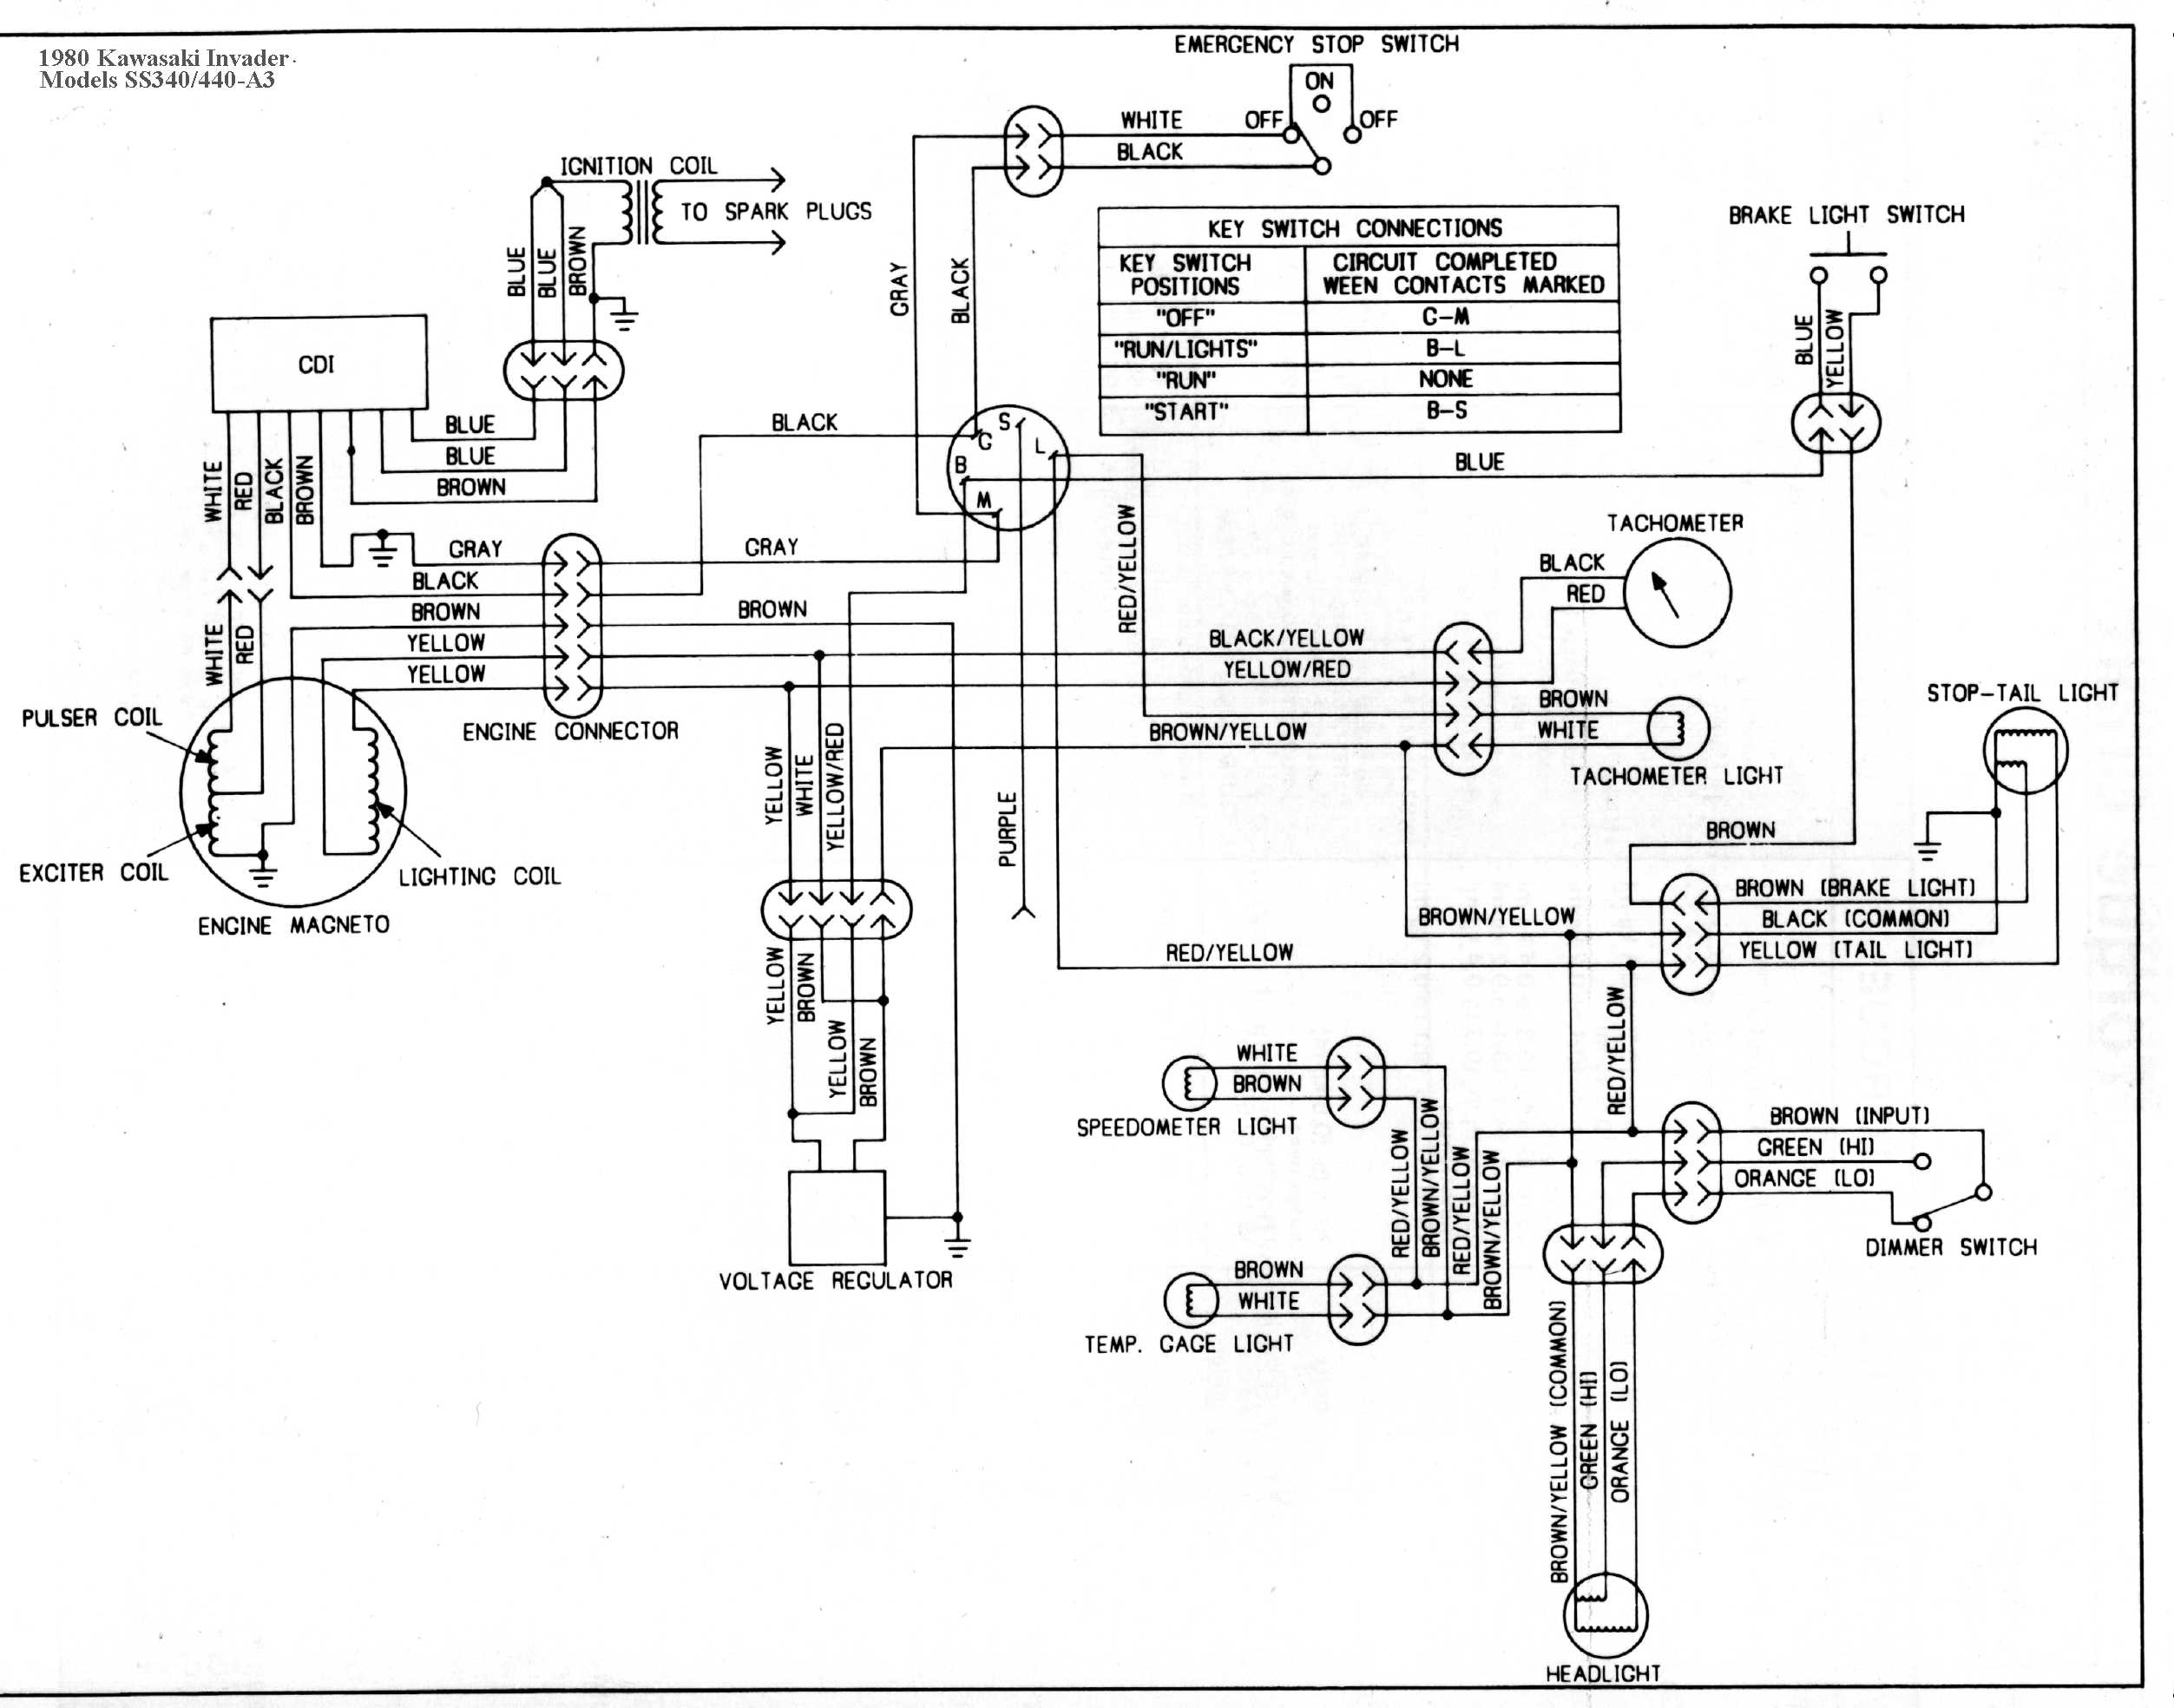 kawisncats freevar com ss340a3 jpg rh retrotrek co polaris snowmobile wiring diagram snowmobile wiring diagram